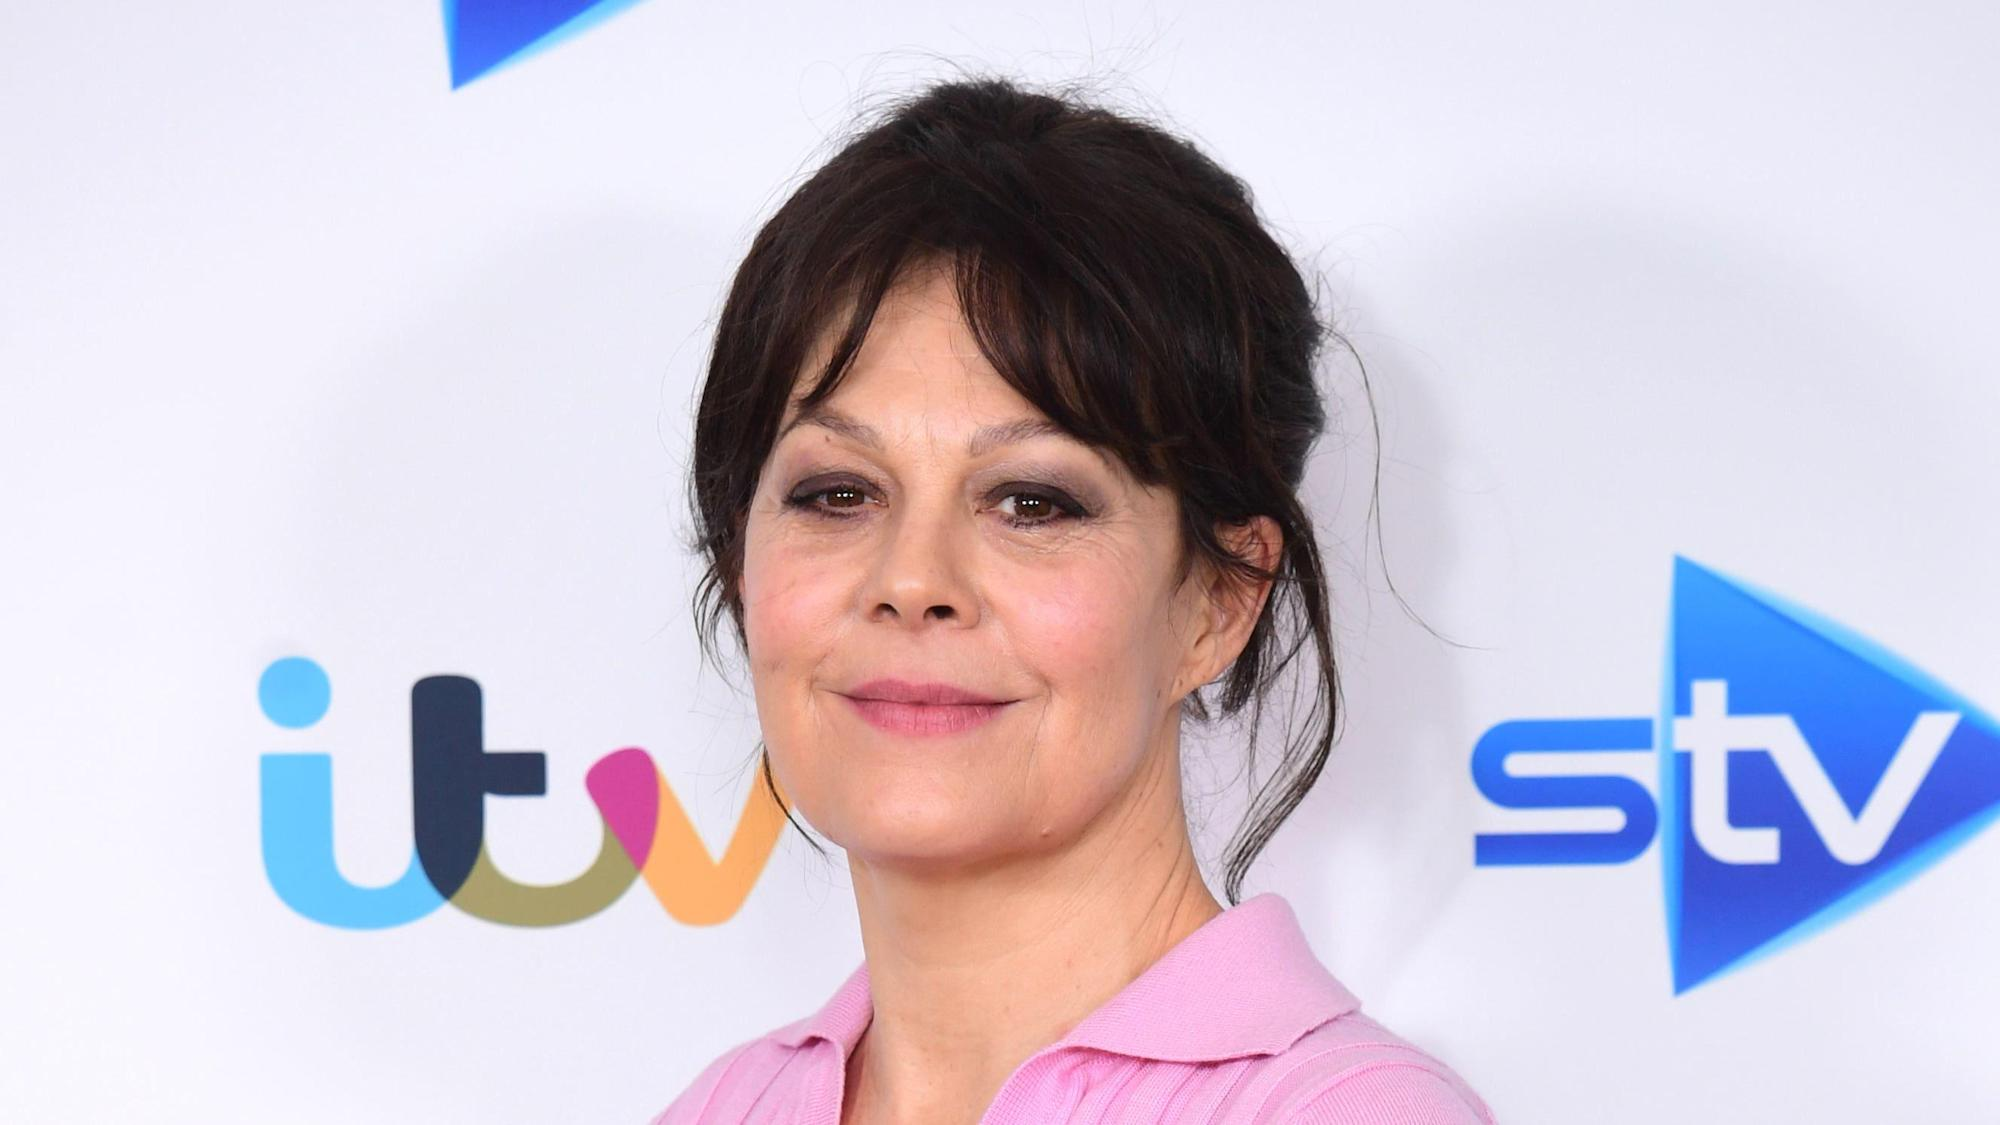 Peaky Blinders shares touching tribute to late actress Helen McCrory